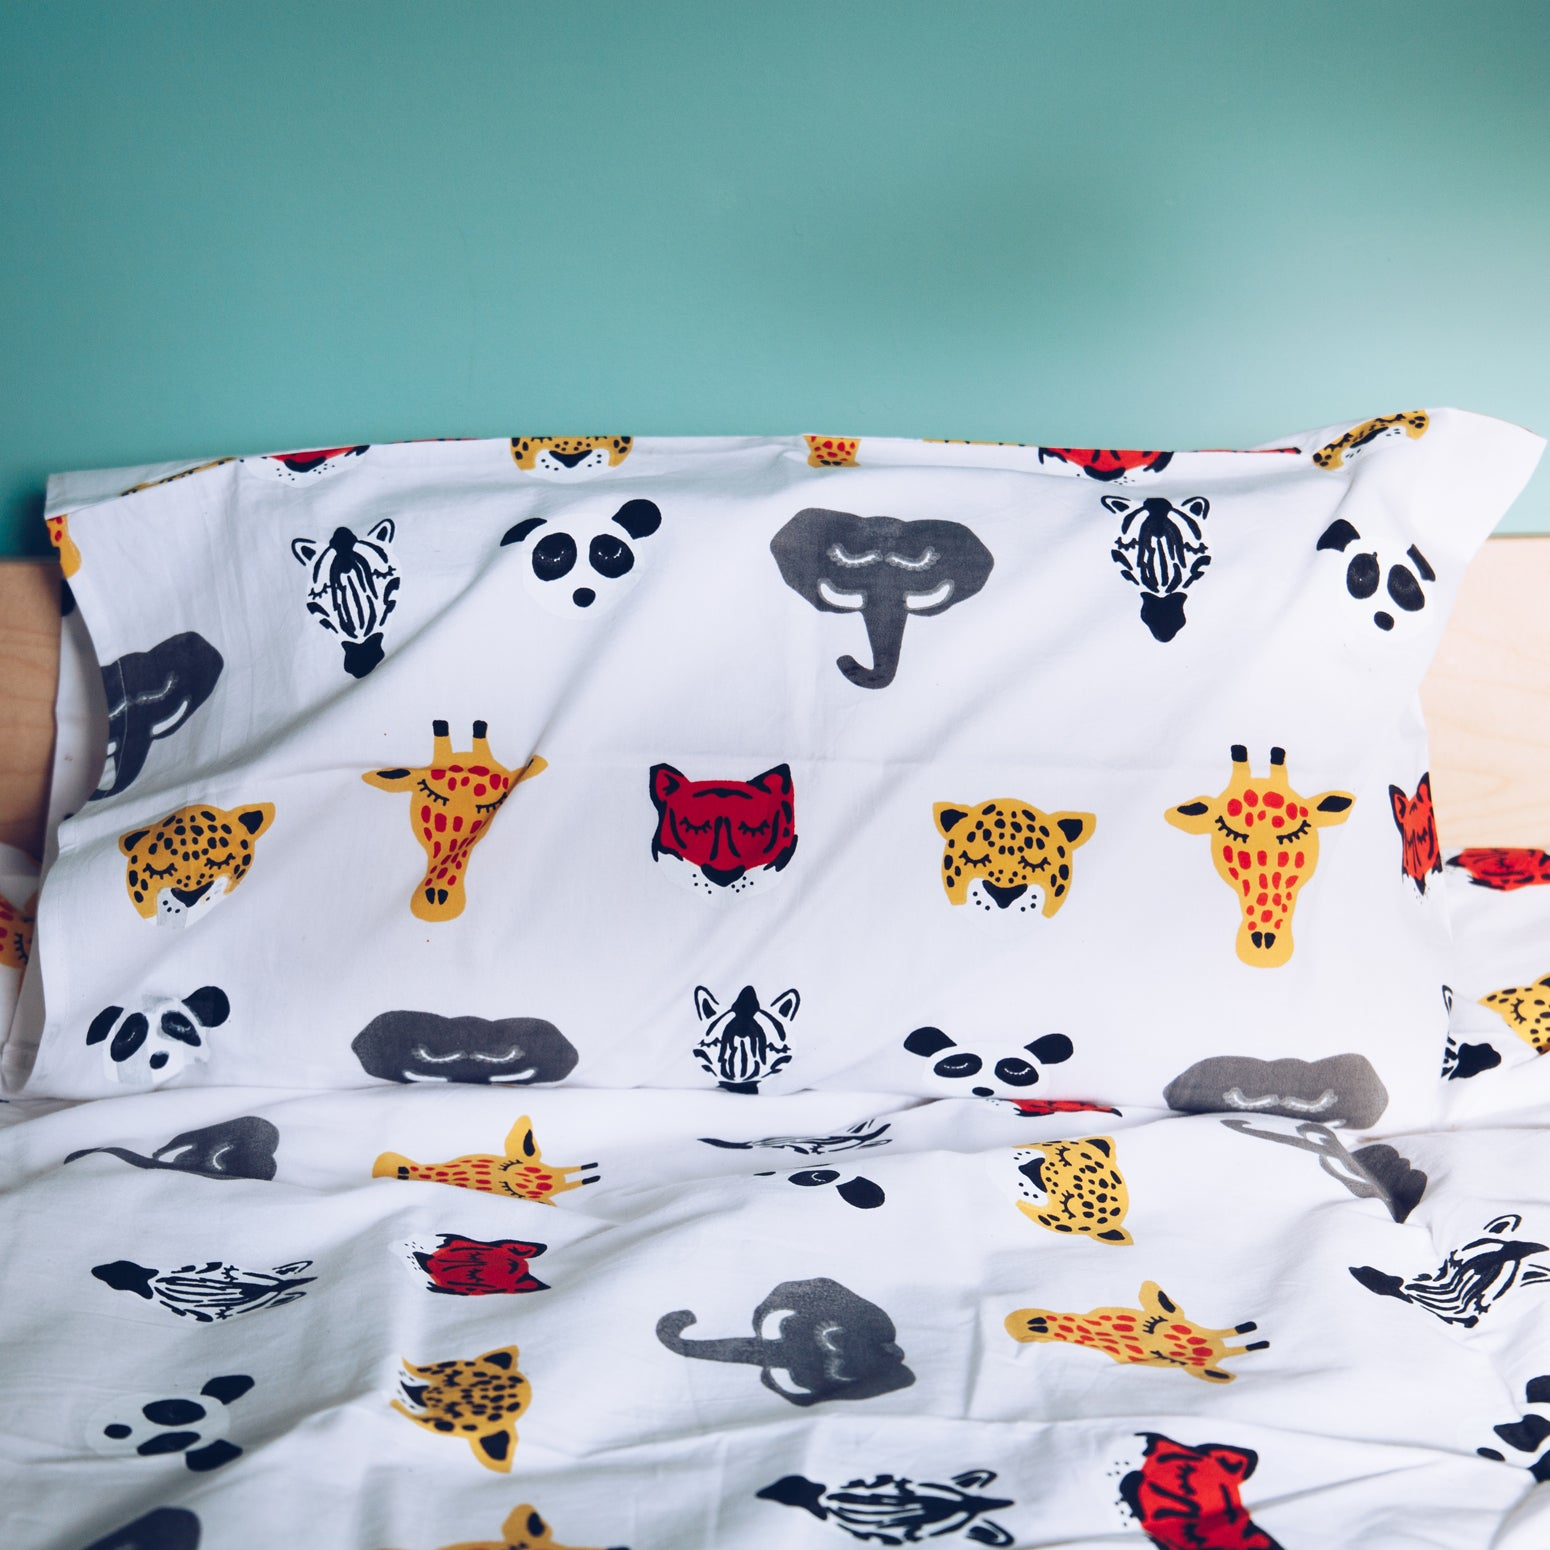 Sleepy Safari Heads toddler cot bed duvet set